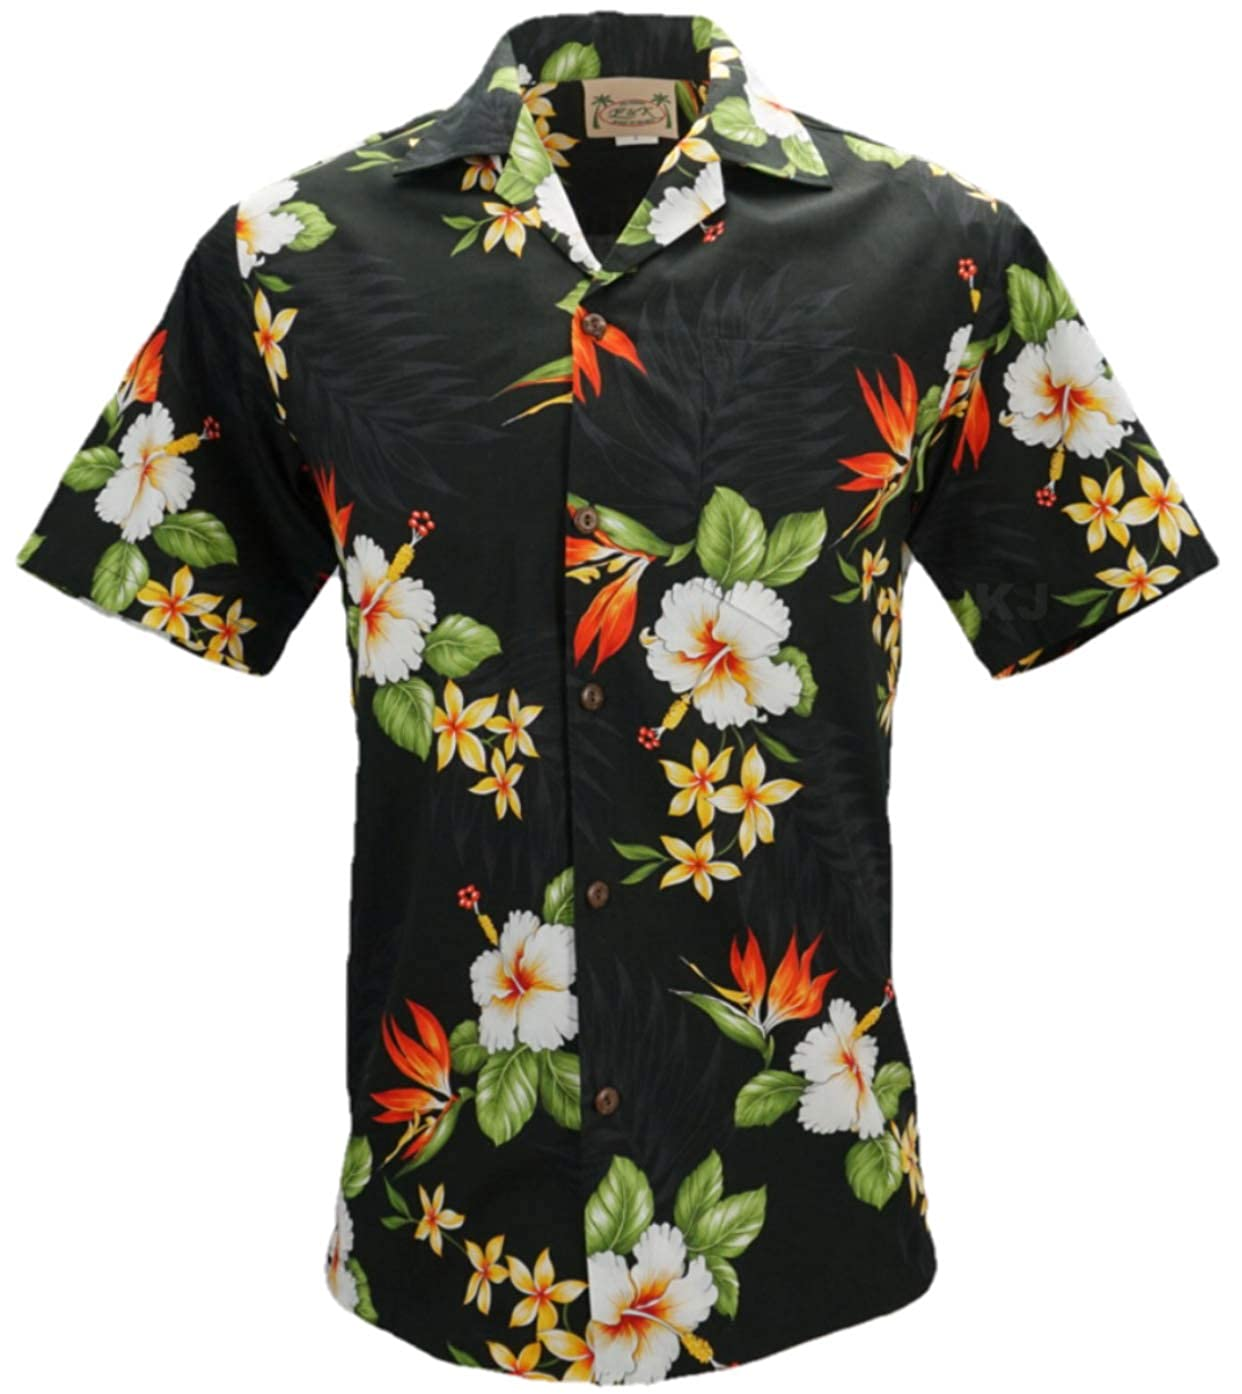 3f14f226 Lightweight, High Quality Fabric and Relaxed Fit will keep you cool and  comfortable. Perfect for beach and tropical vacations, cruises, luau ...